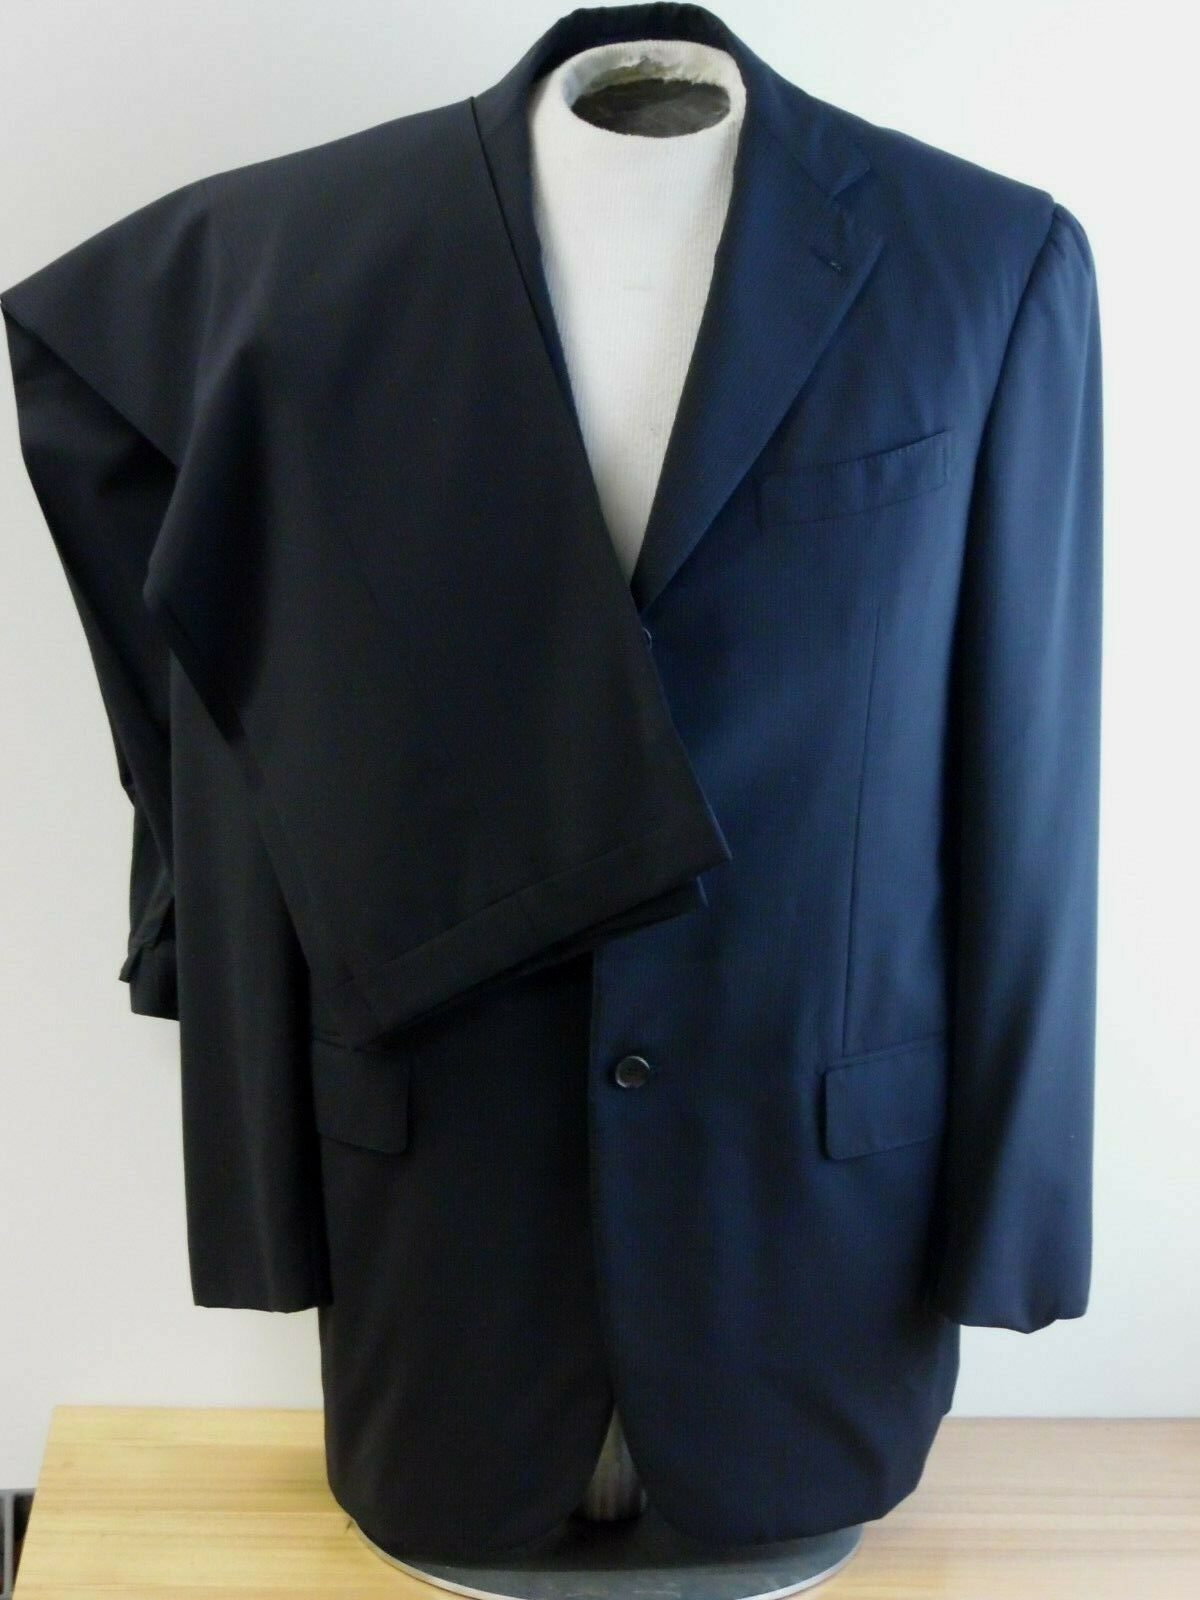 Gianluca Isaia Napoli Suit spider 120's Navy w  light pin striped 41 R  34x30